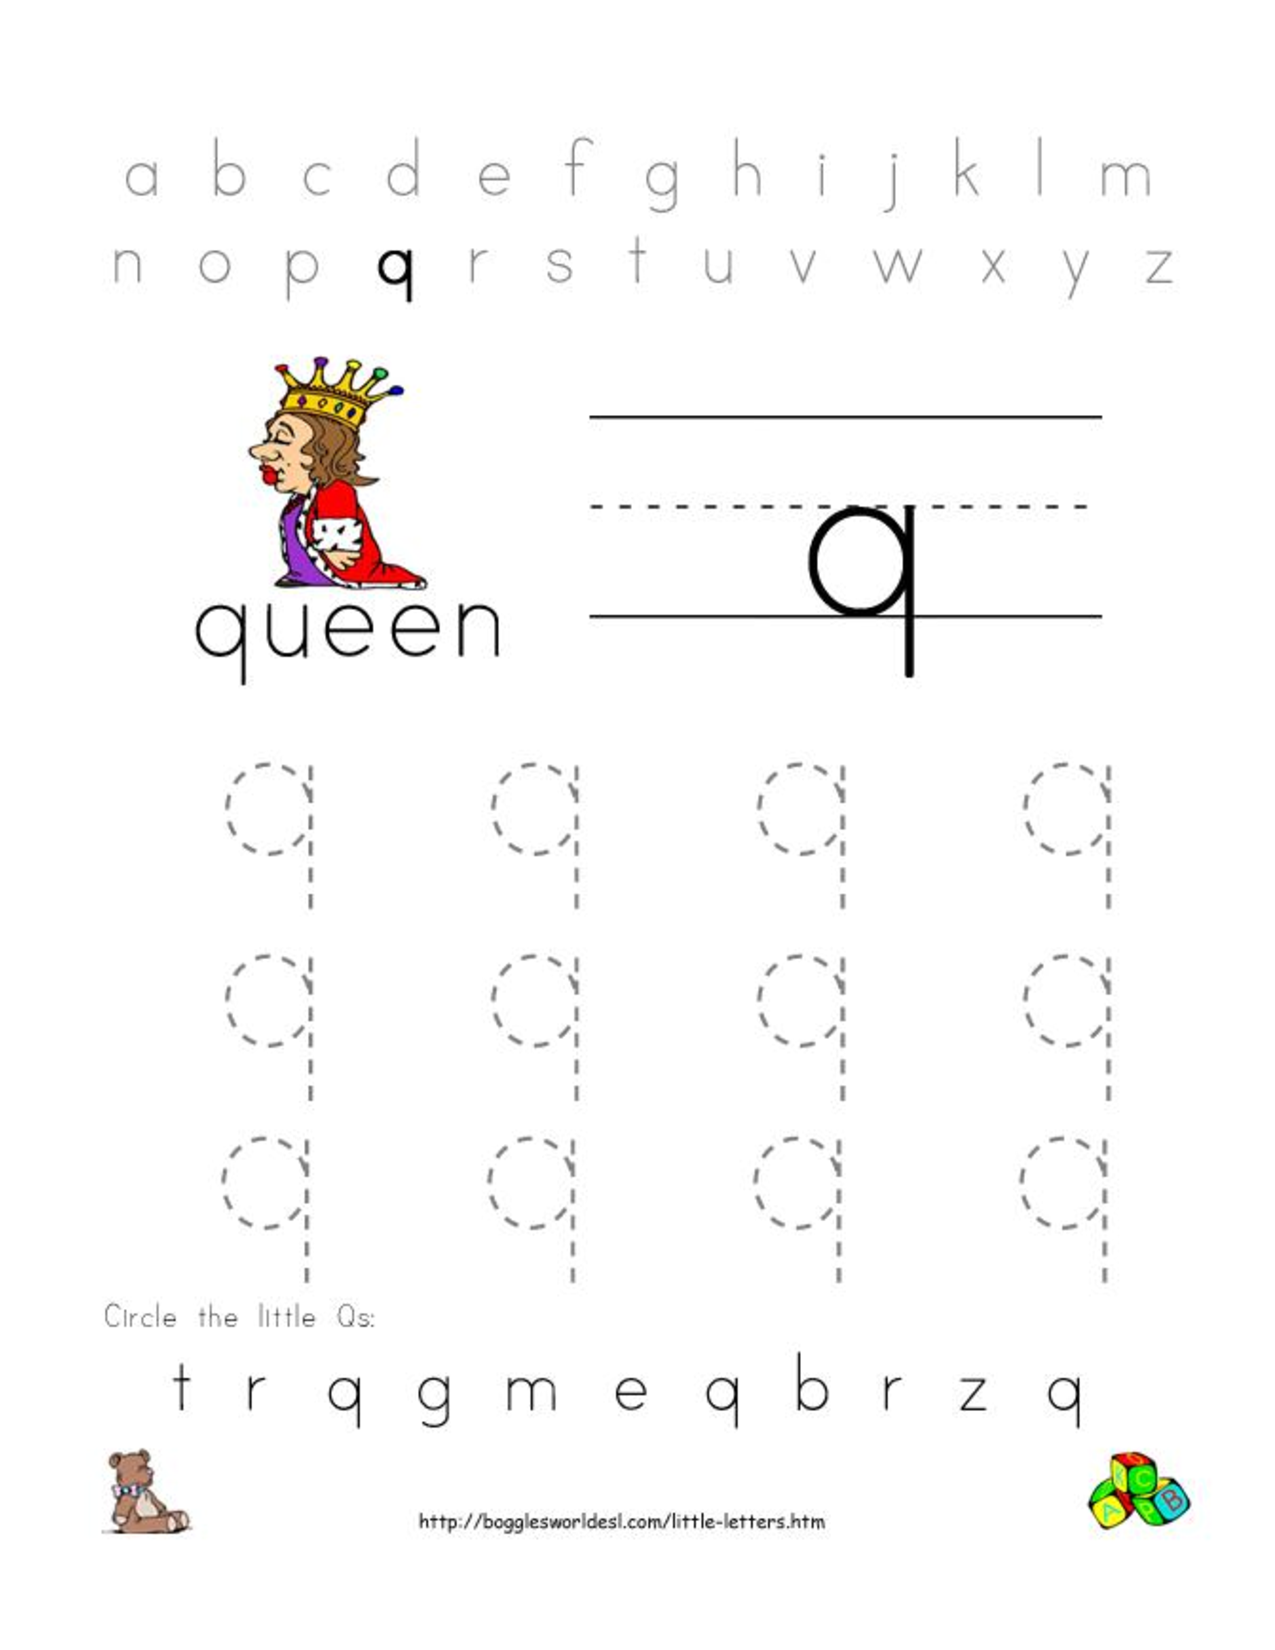 Alphabet worksheets for preschoolers alphabet worksheet little alphabet worksheets for preschoolers alphabet worksheet little letter q robcynllc Image collections